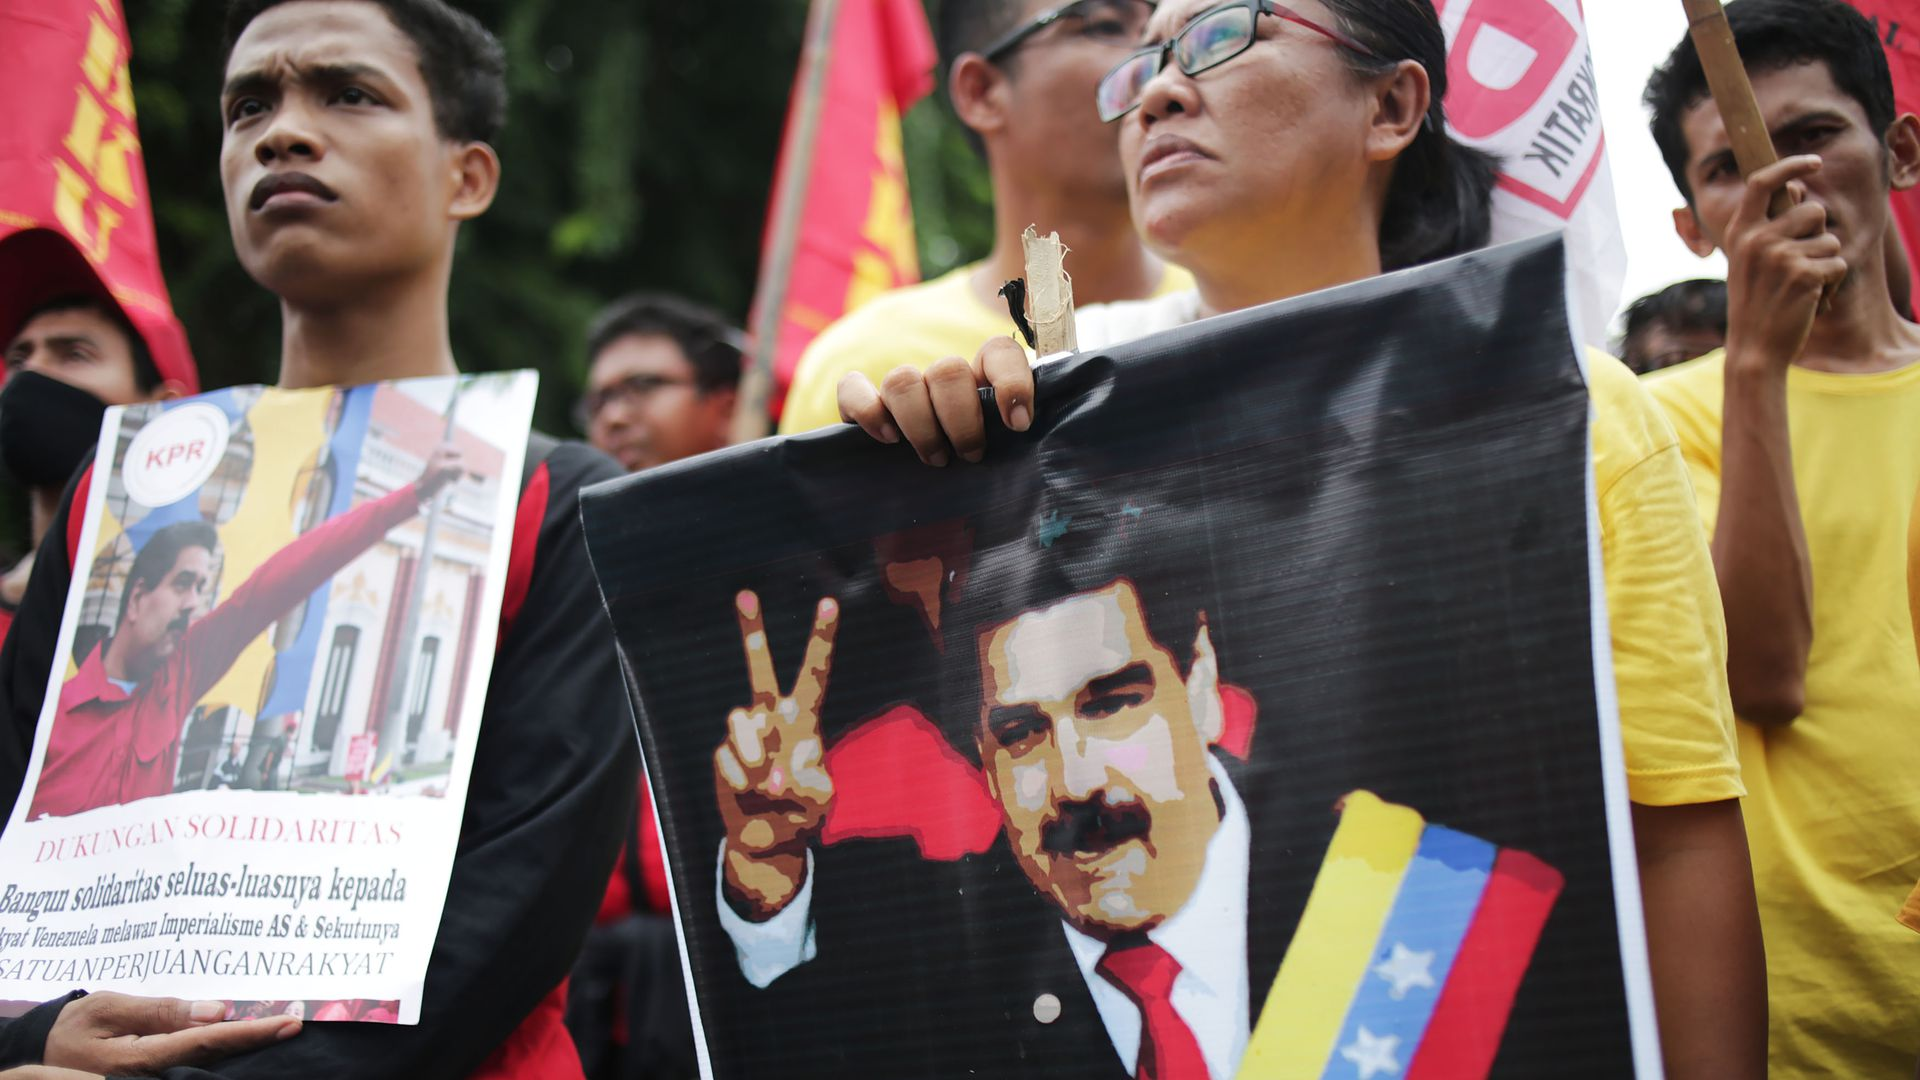 In this picture, a Venezuelan woman holds a banner of President Maduro at a protest.